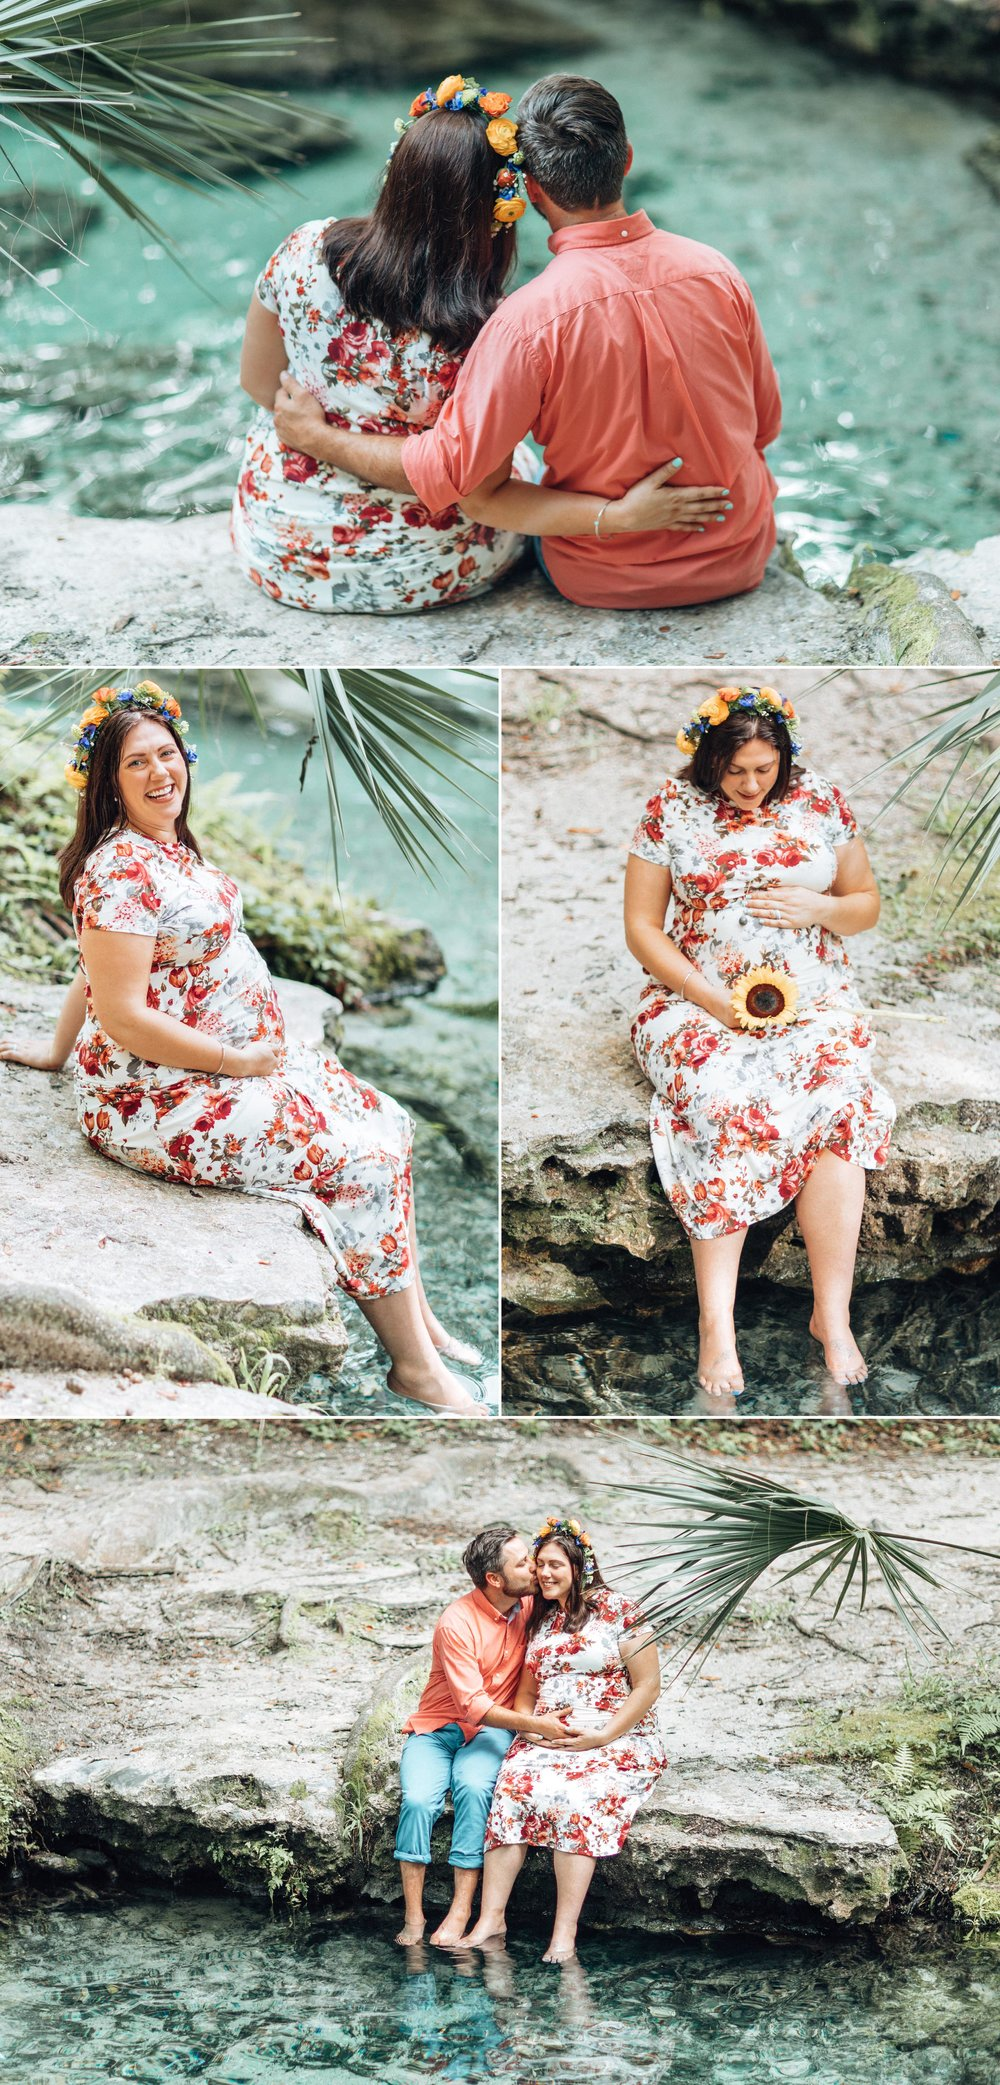 Boho Florida Maternity Photo Session- Kelly Springs State Park-Meghan+Michael3.jpg